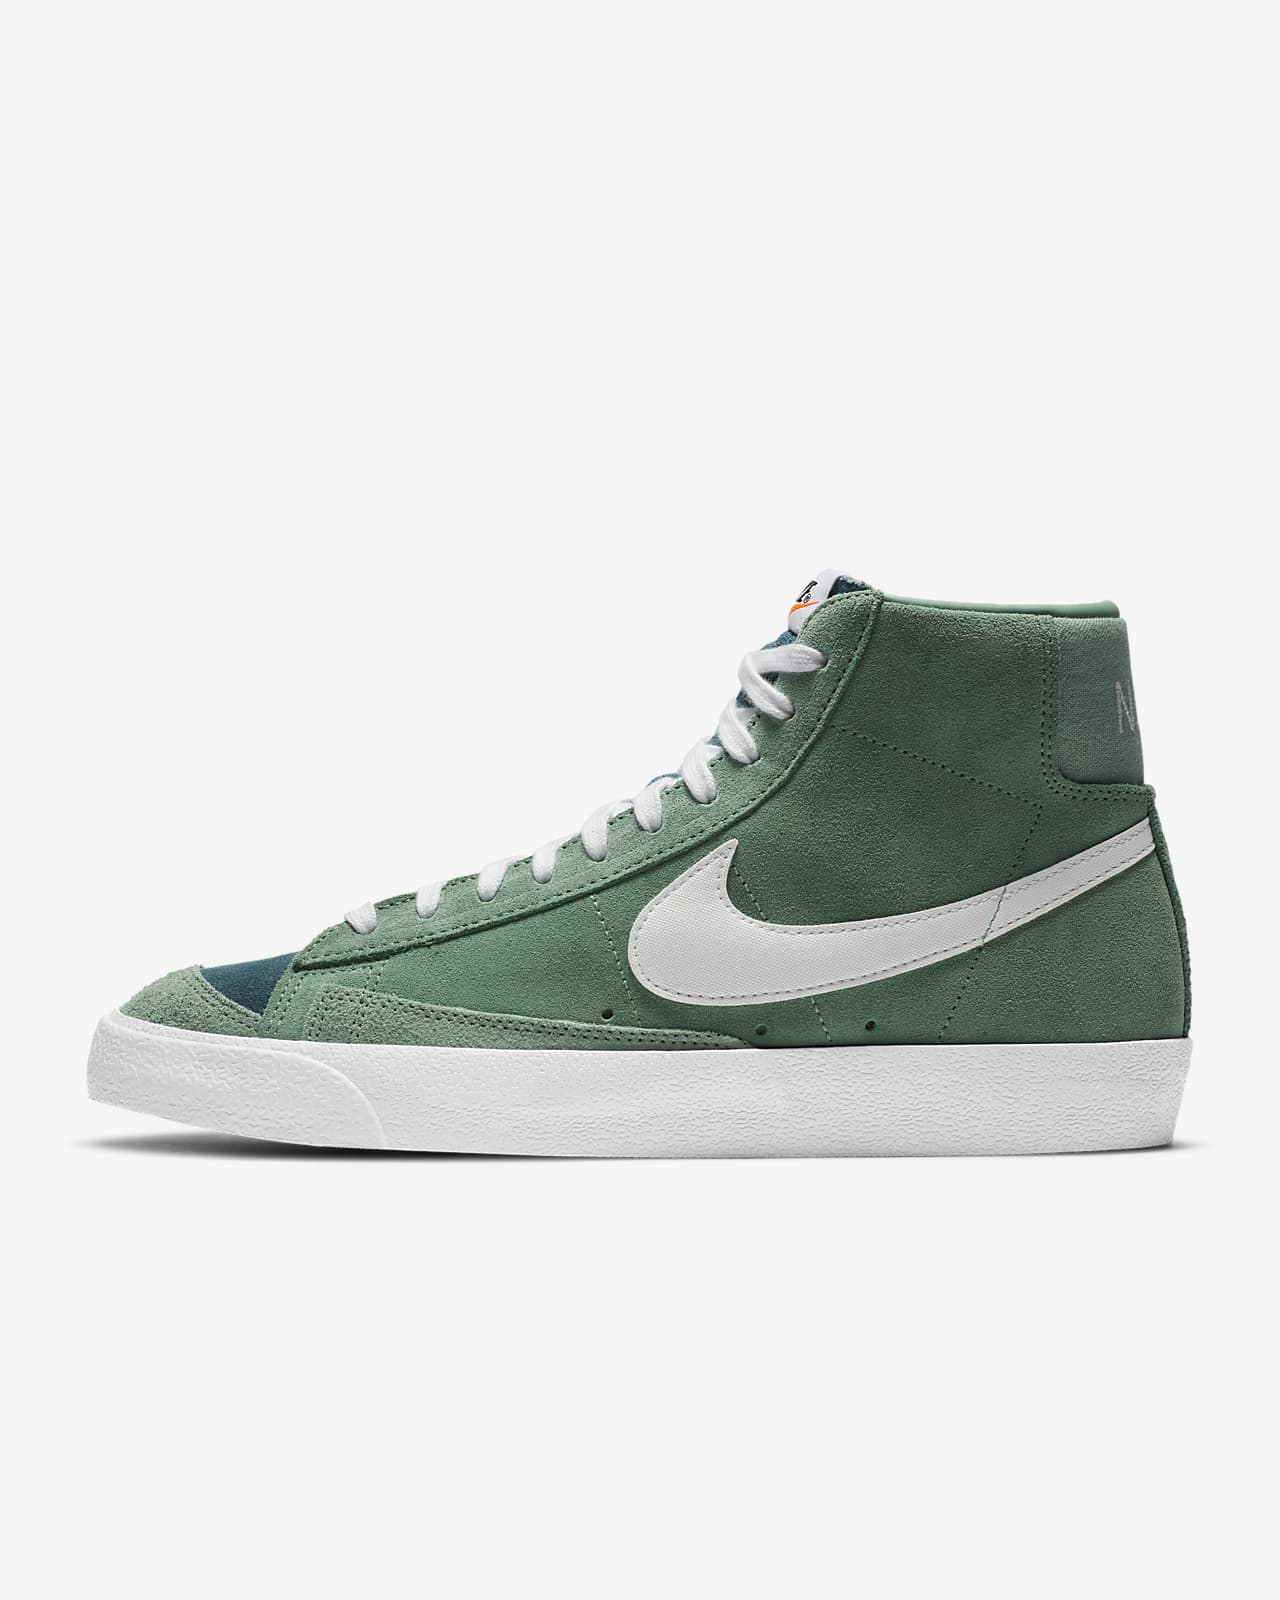 intimidad Interpretar Descarga  Nike Blazer '77 Vintage Men's Shoe. Nike.com